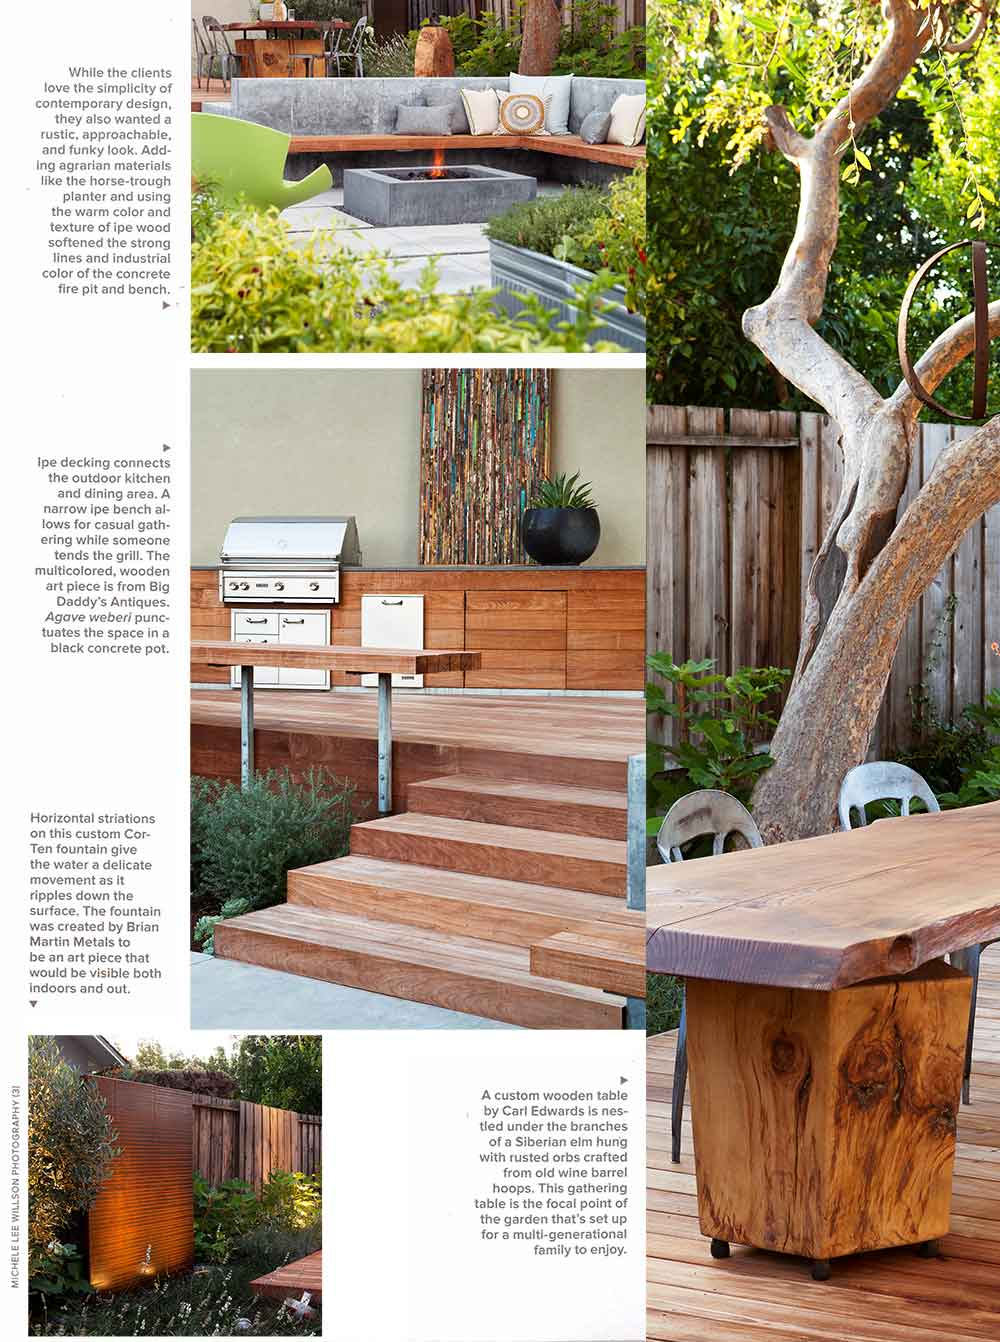 Garden-Design-2015-Summer-pg01.jpg